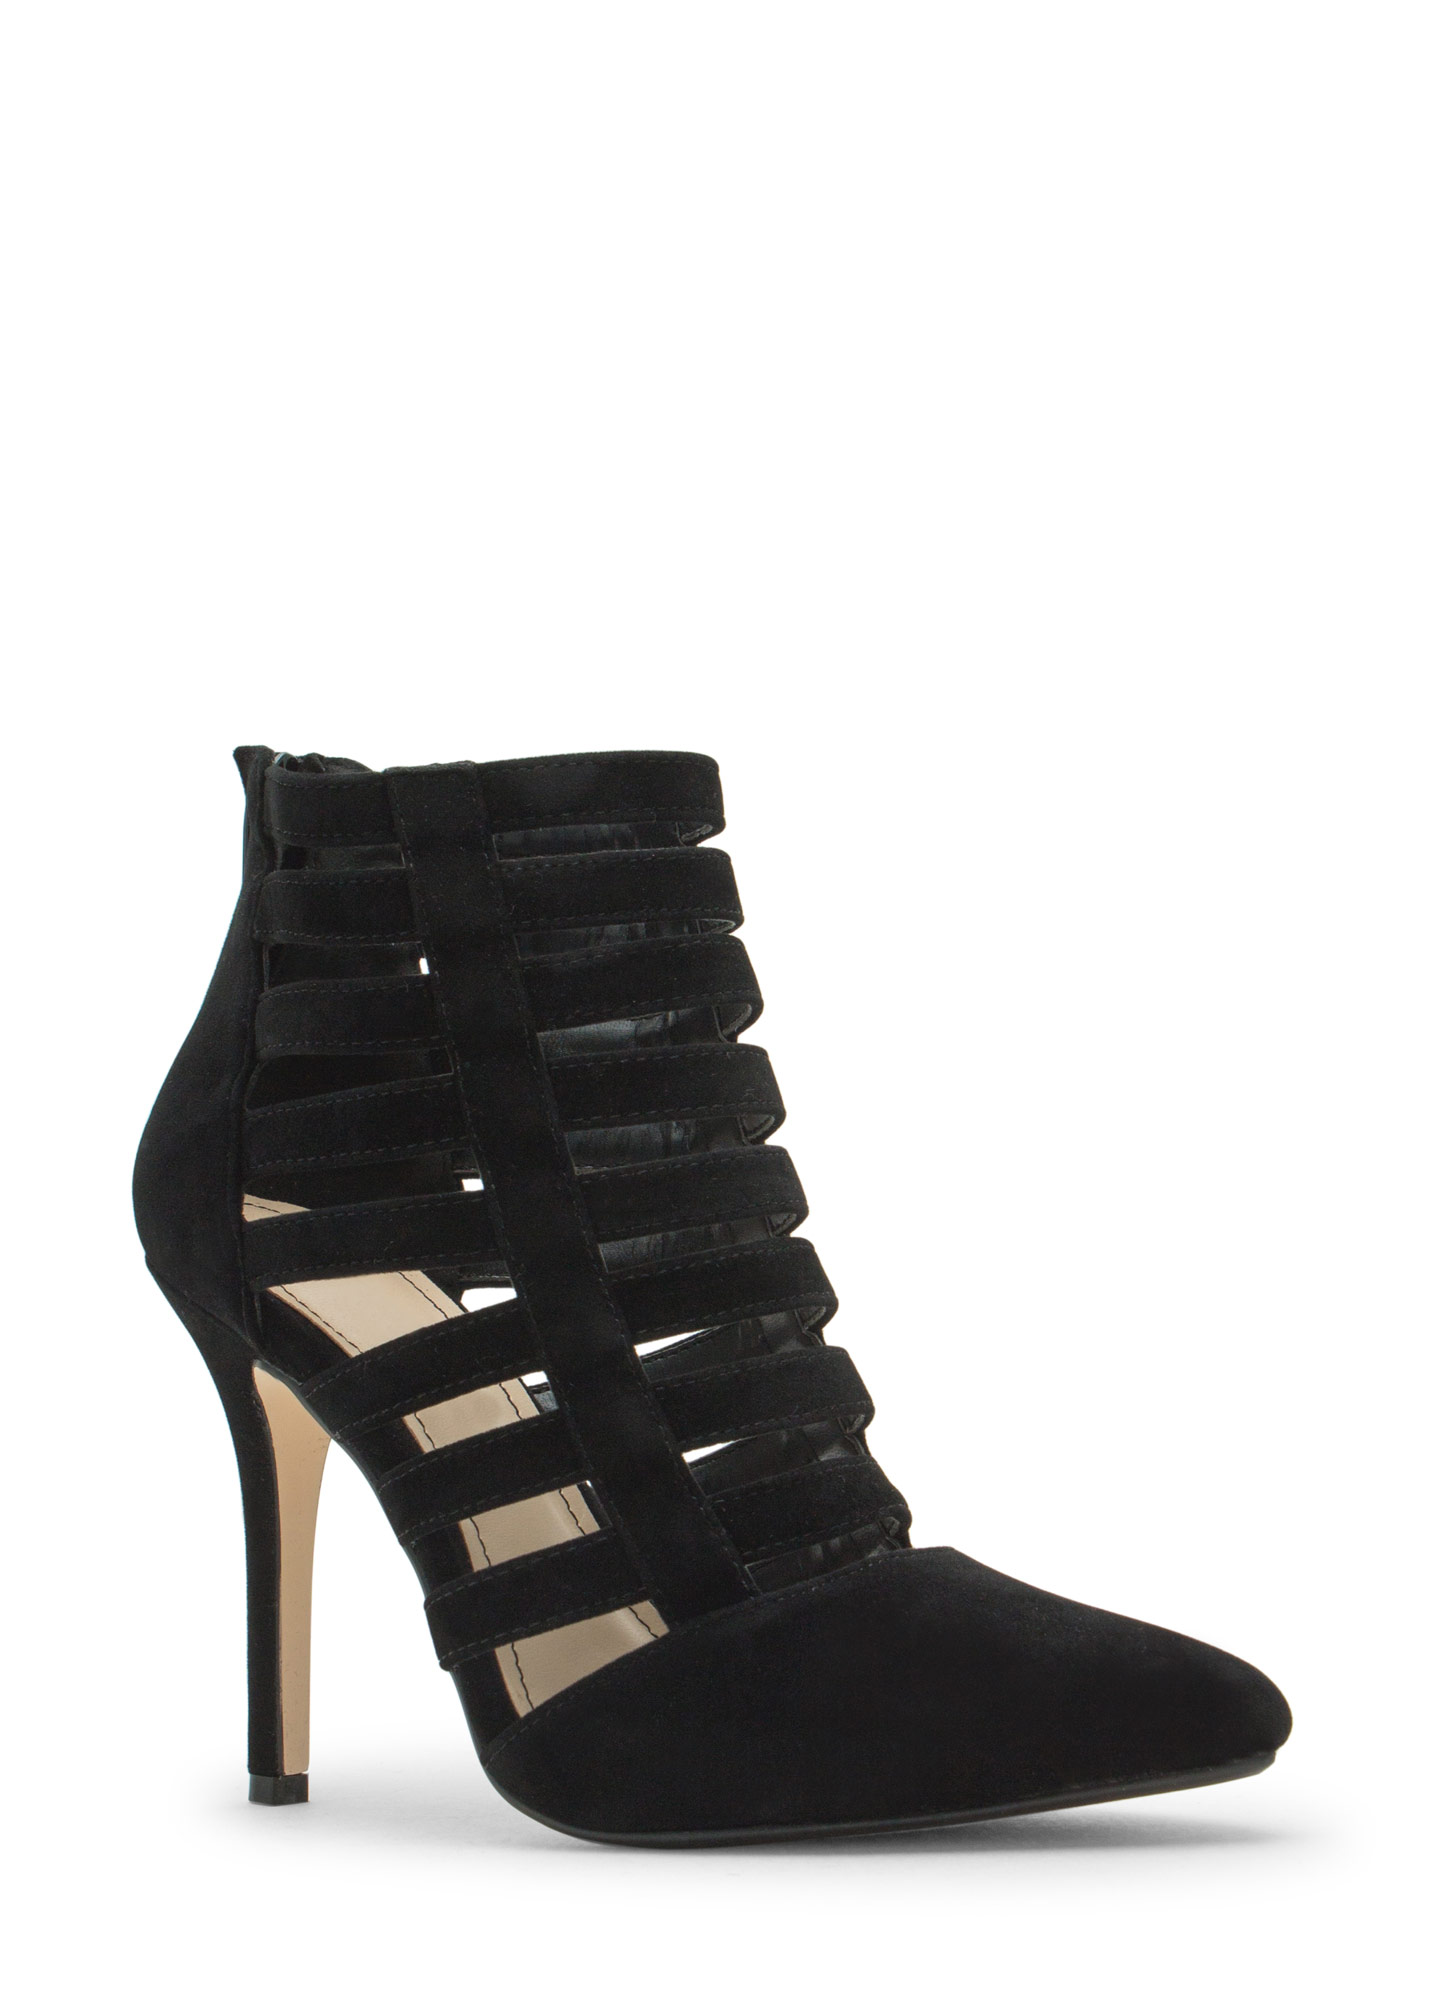 Laddered Cage Pointy Heels BLACK